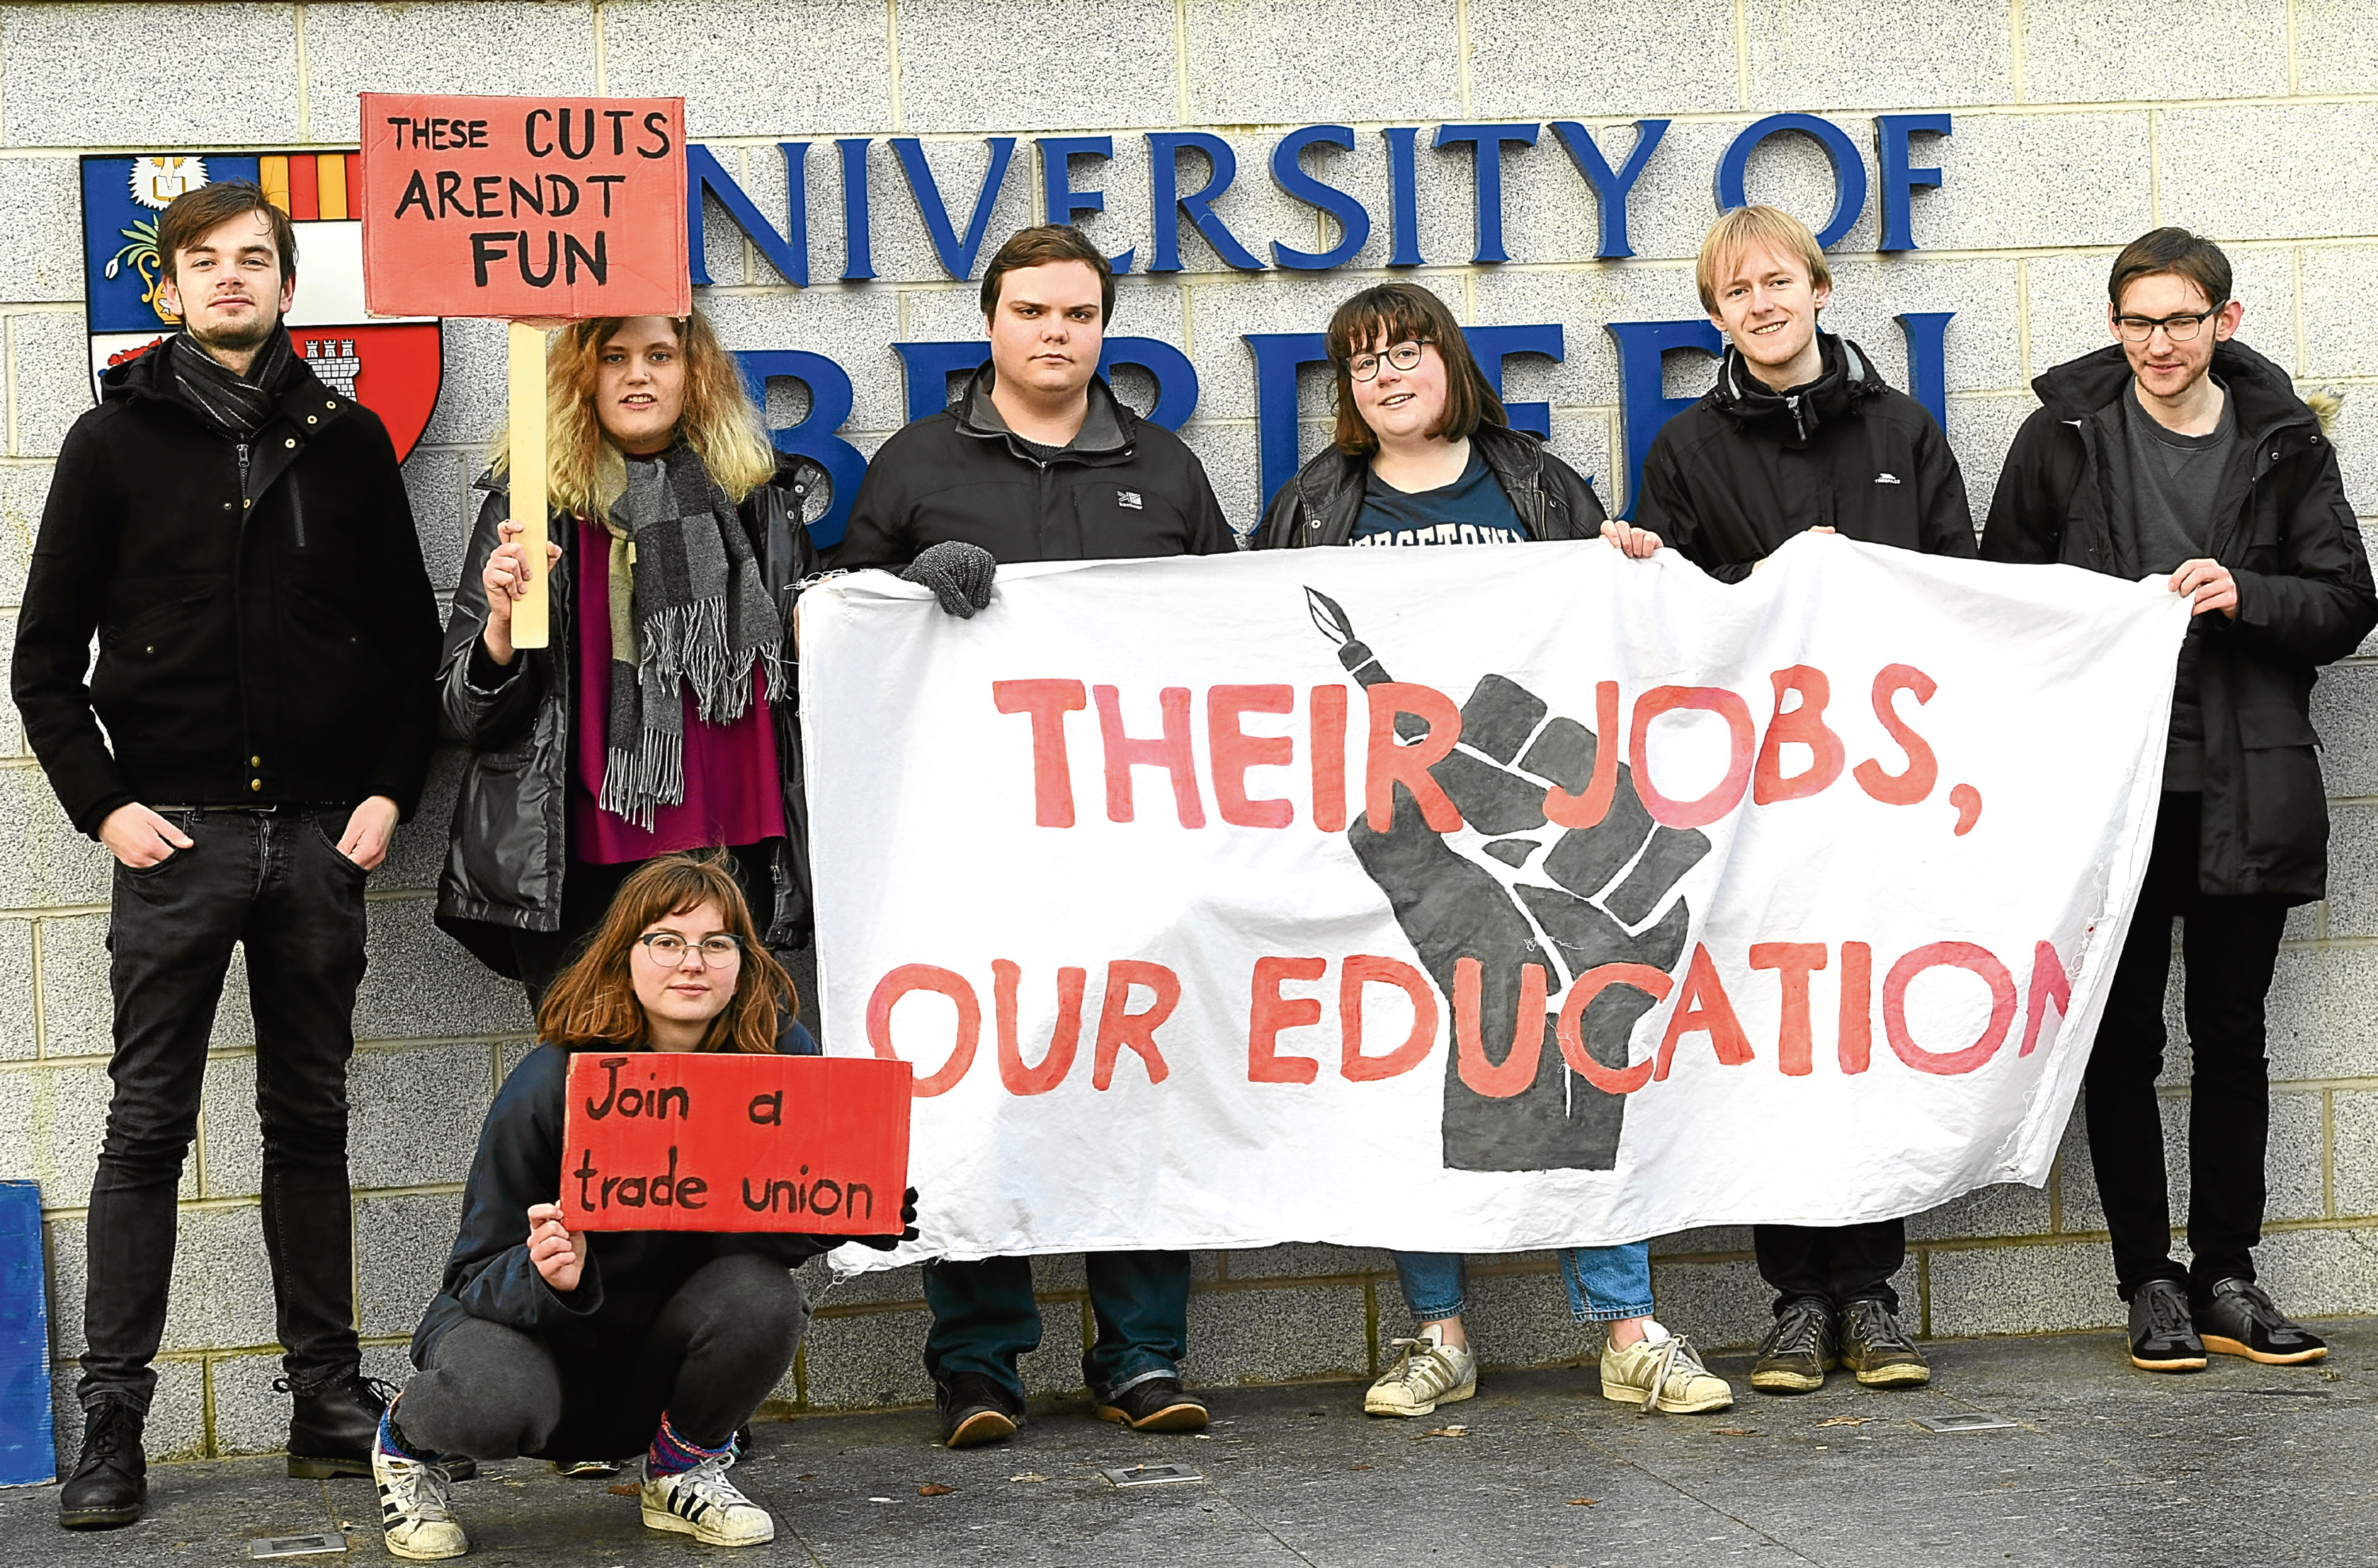 Lecturers supported by some students staged a protest at Aberdeen university.